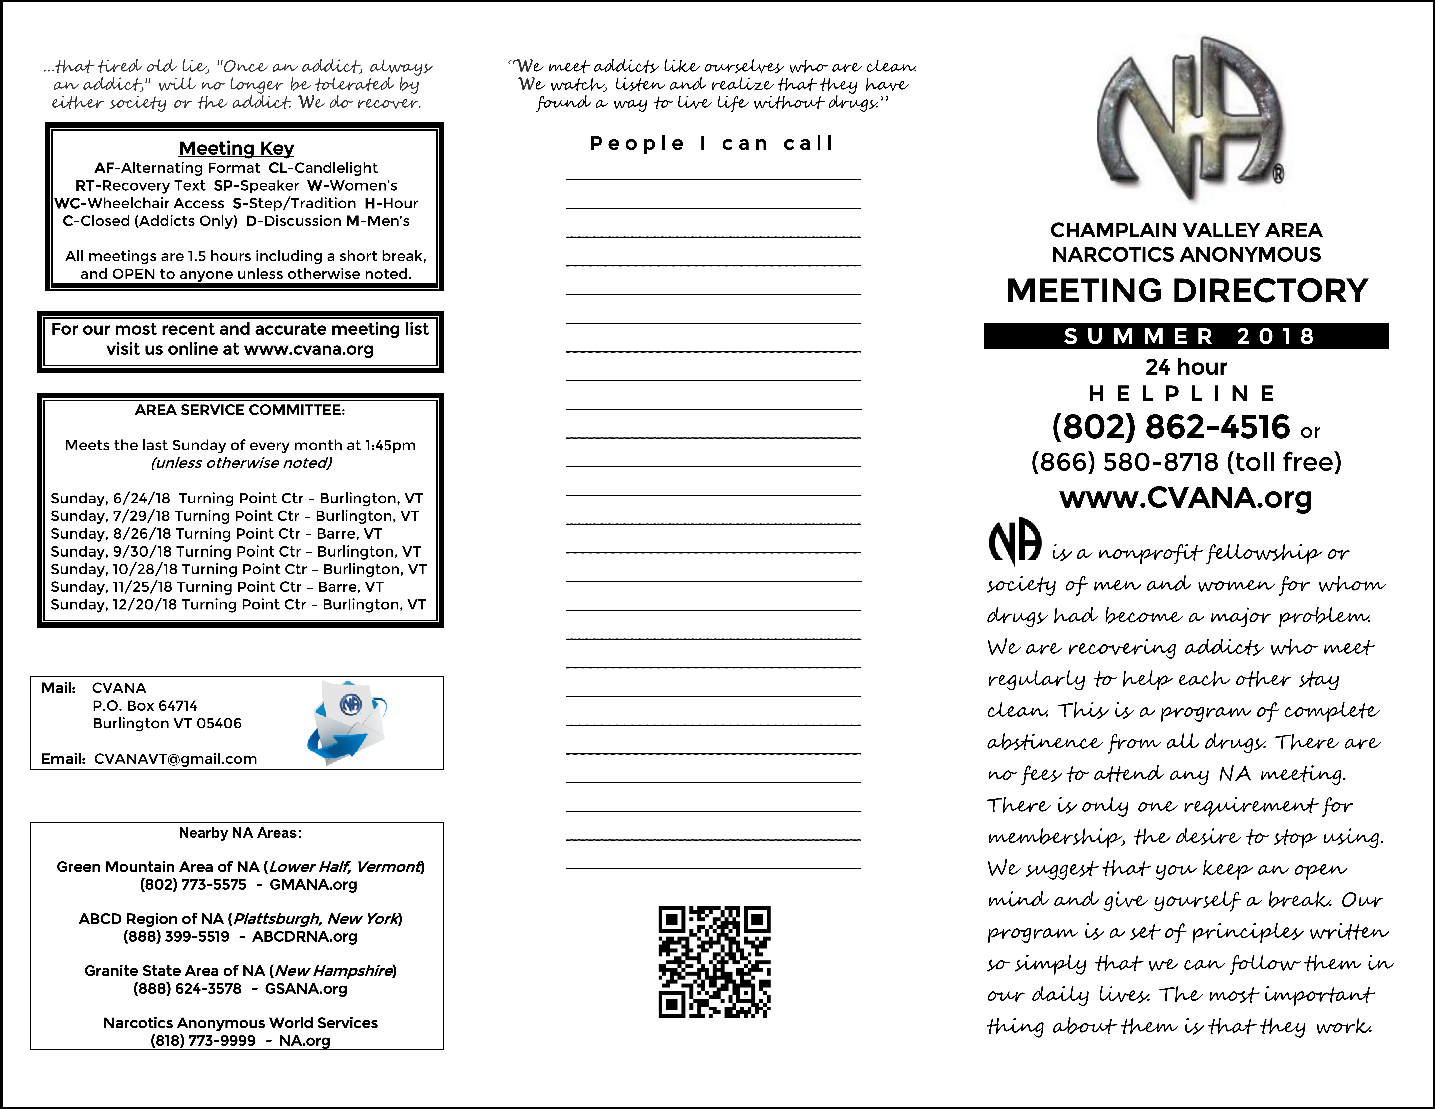 champlain valley area of narcotics anonymous